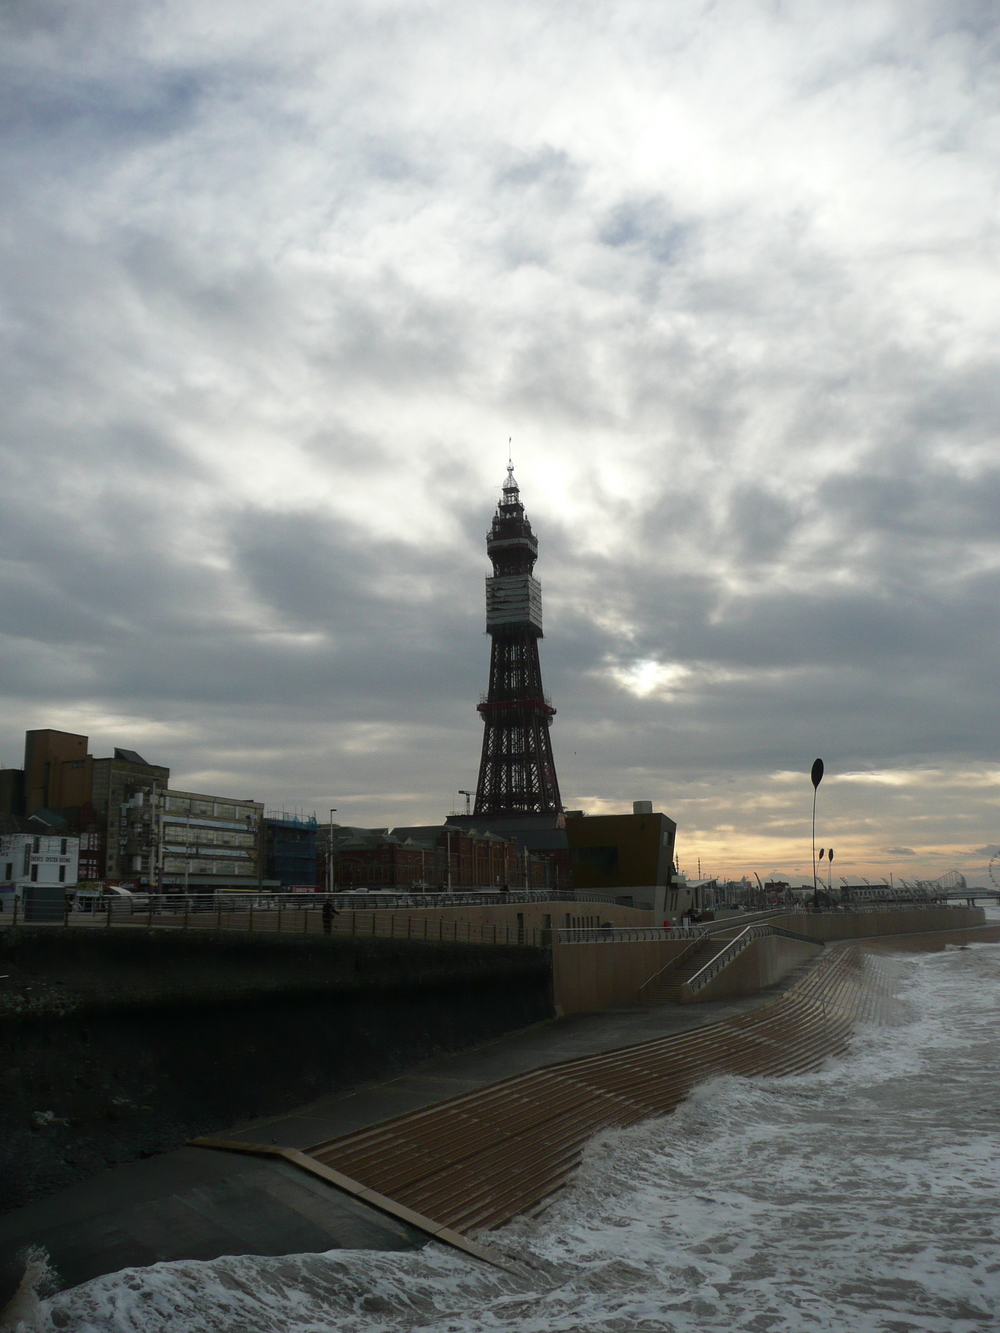 Study of Blackpool Tower 2014 Inkjet print on paper 14 parts, each: 40 x 30 cm / 15.7 x 11.8 in